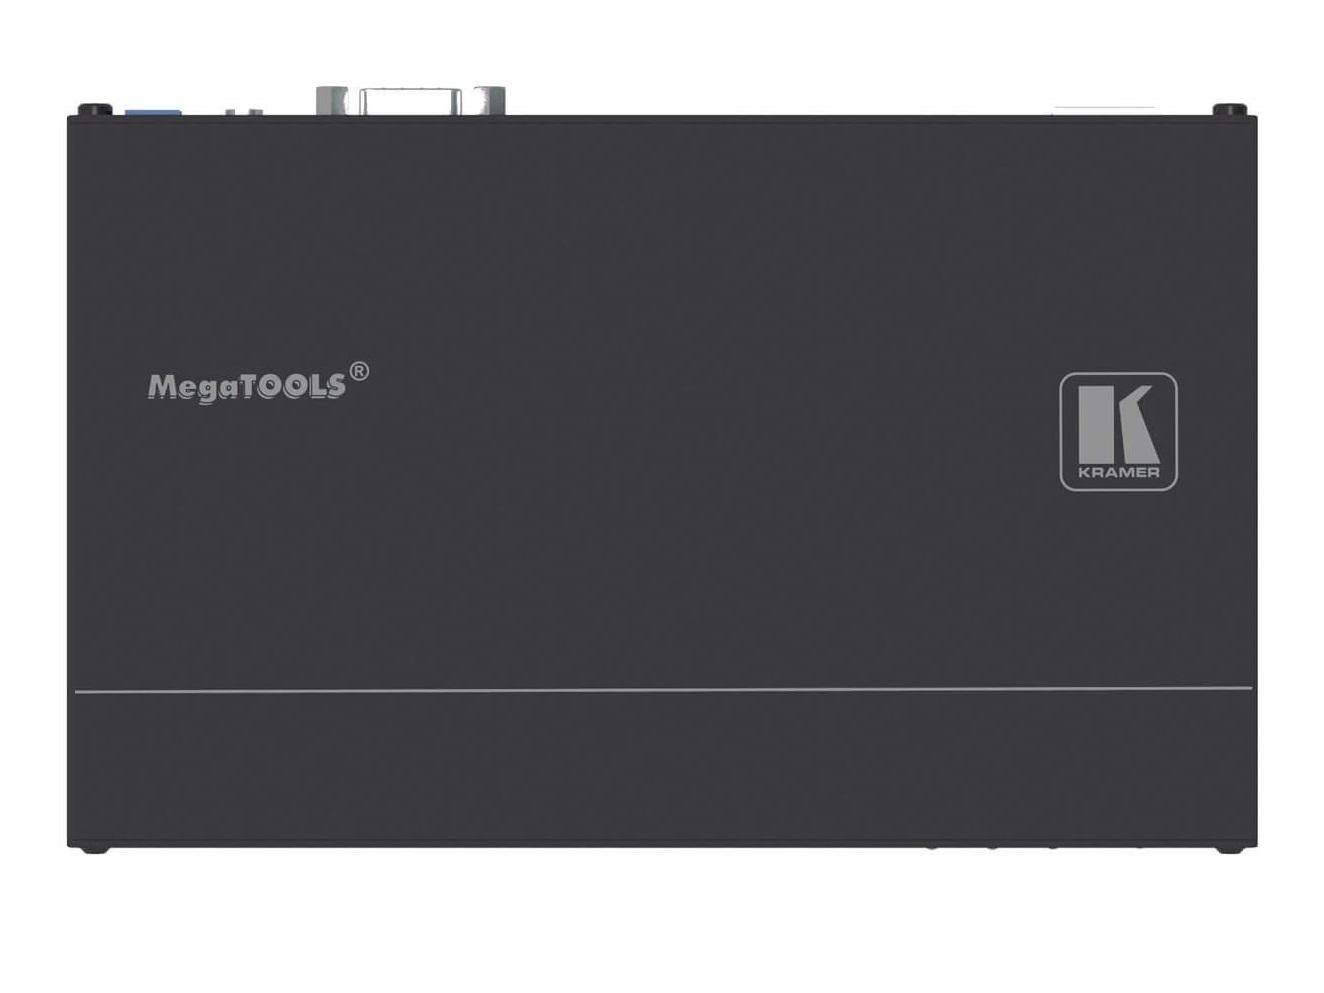 TP-780TXR 4K HDMI/Ethernet/RS-232/IR HDBaseT Twisted Pair Transmitter/PoE by Kramer